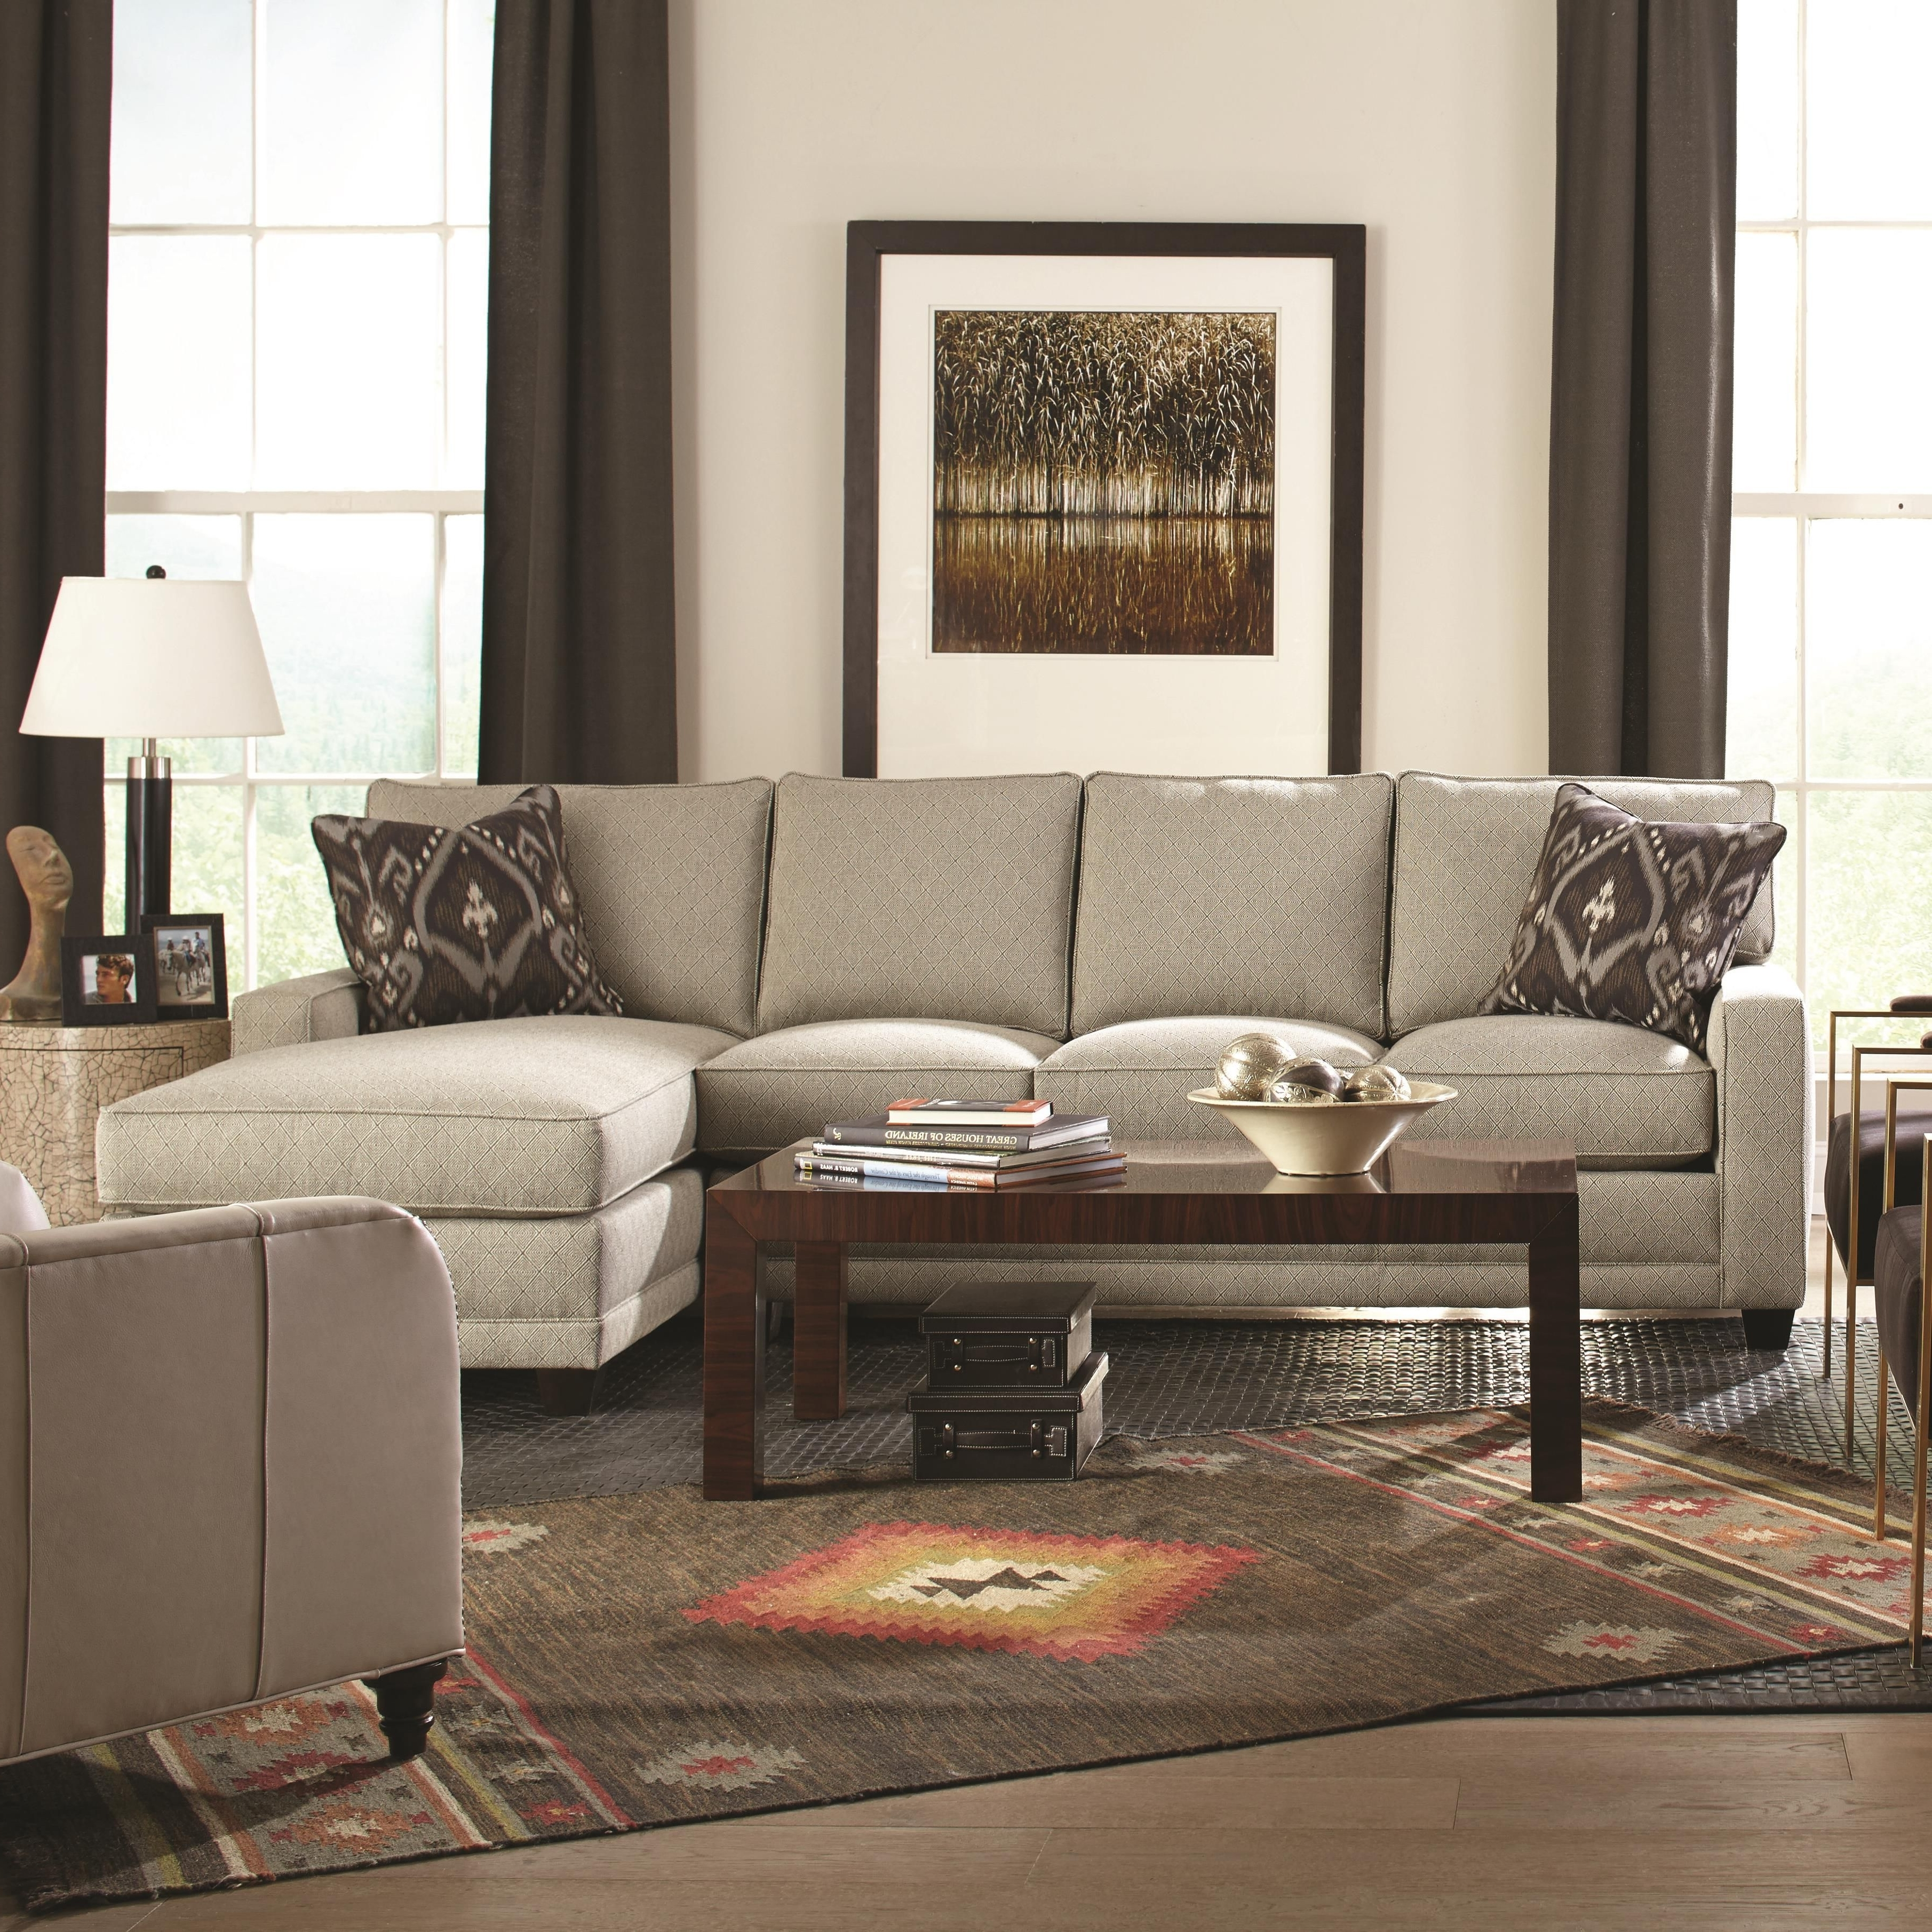 Living Intended For Maryland Sofas (View 6 of 20)